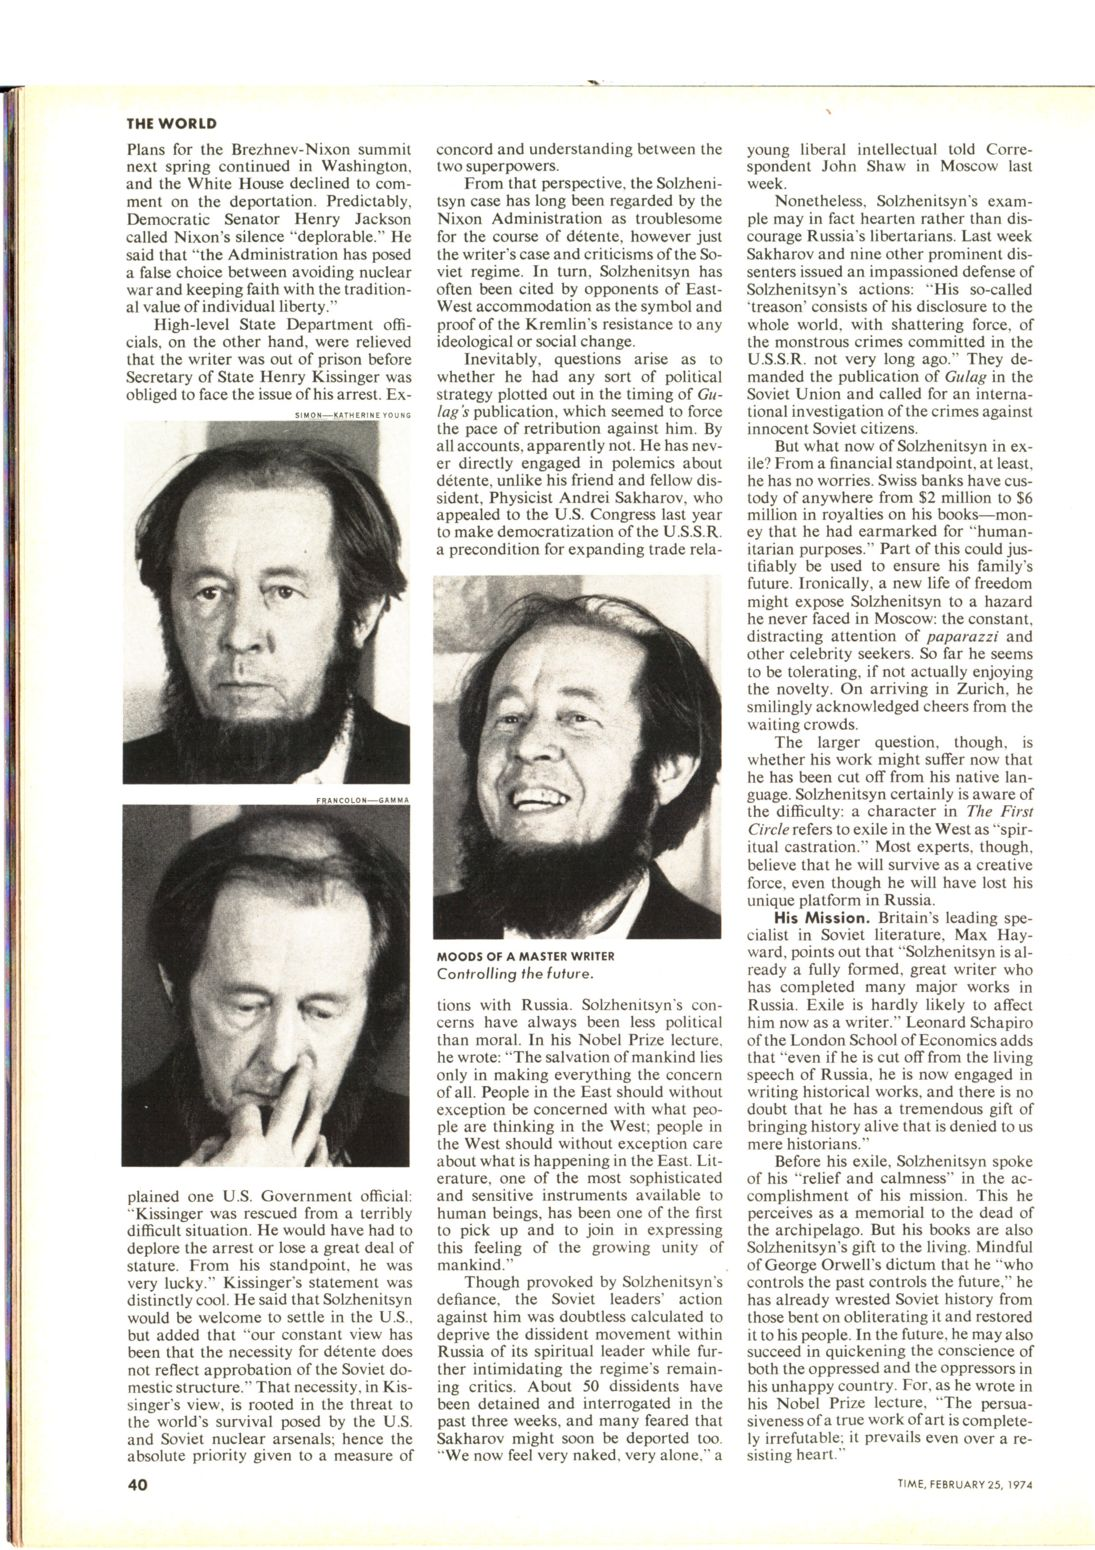 Time-Feb. 25, 1974, Vol. 103, No. 8-pic5